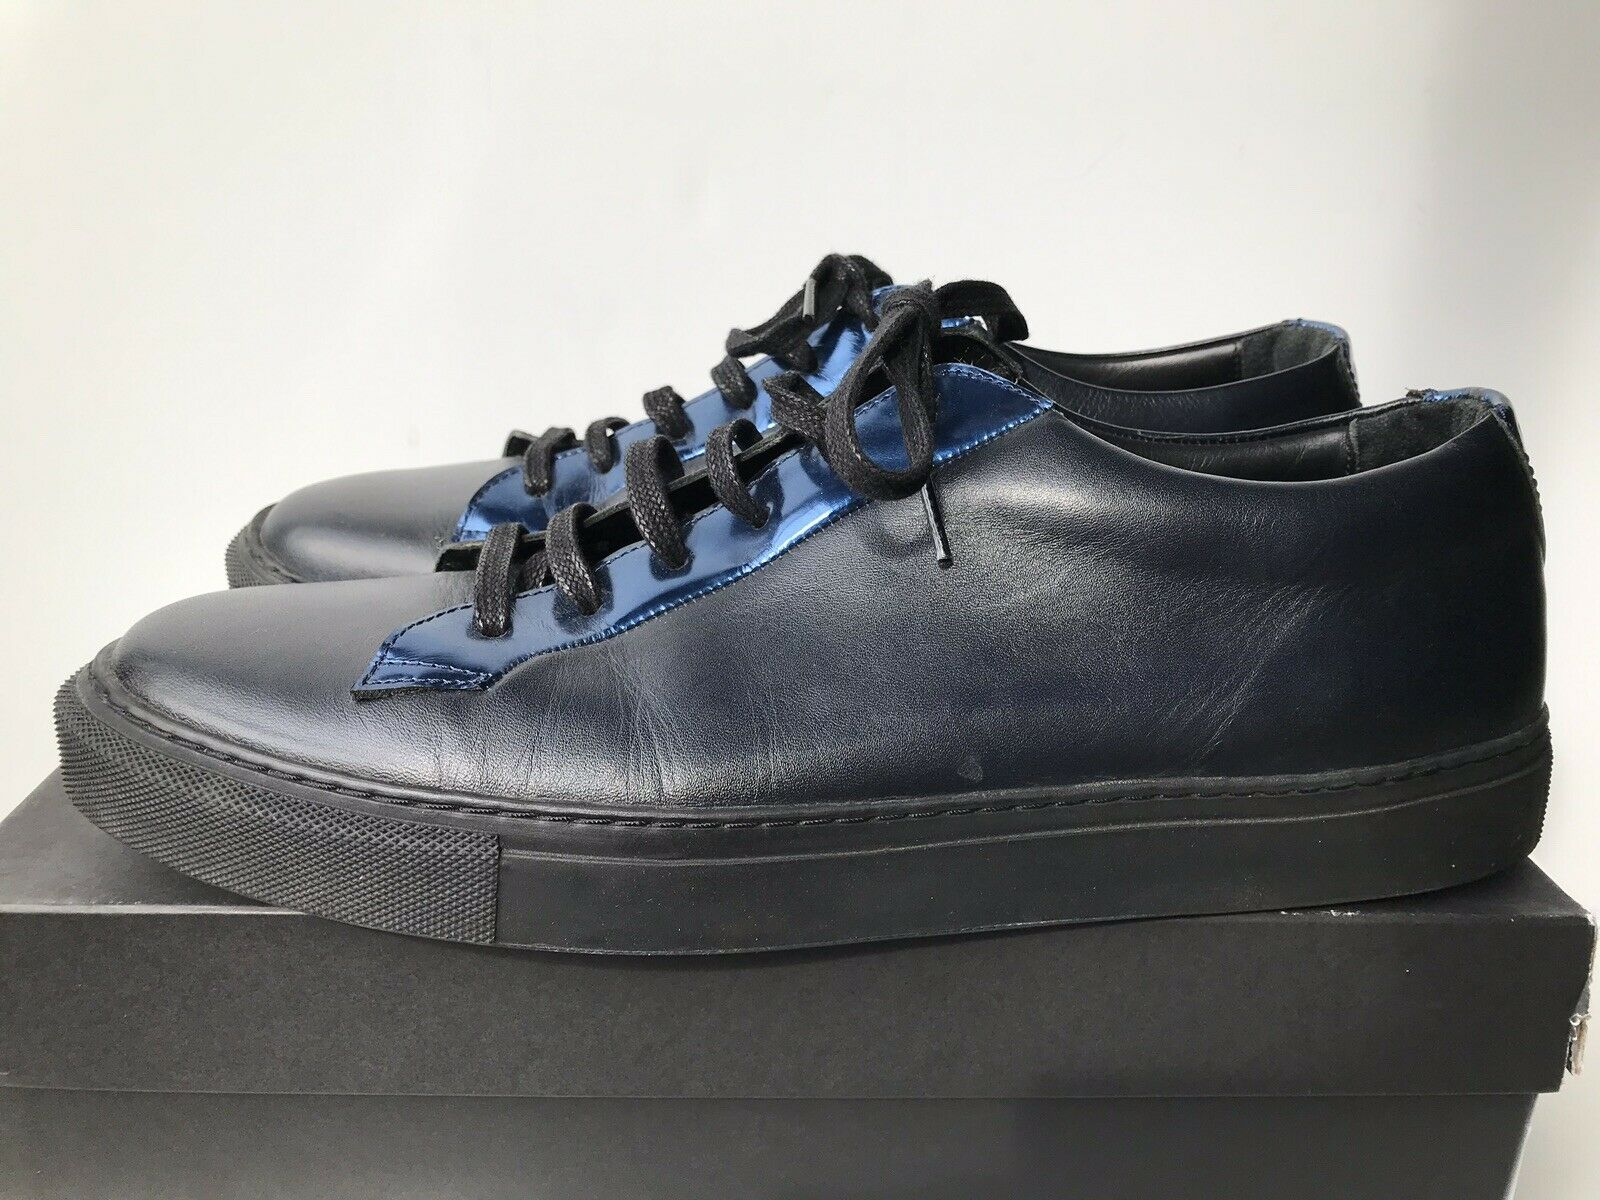 RAF SIMONS nero Leather blu Metallic Low scarpe da ginnastica scarpe 45 US12